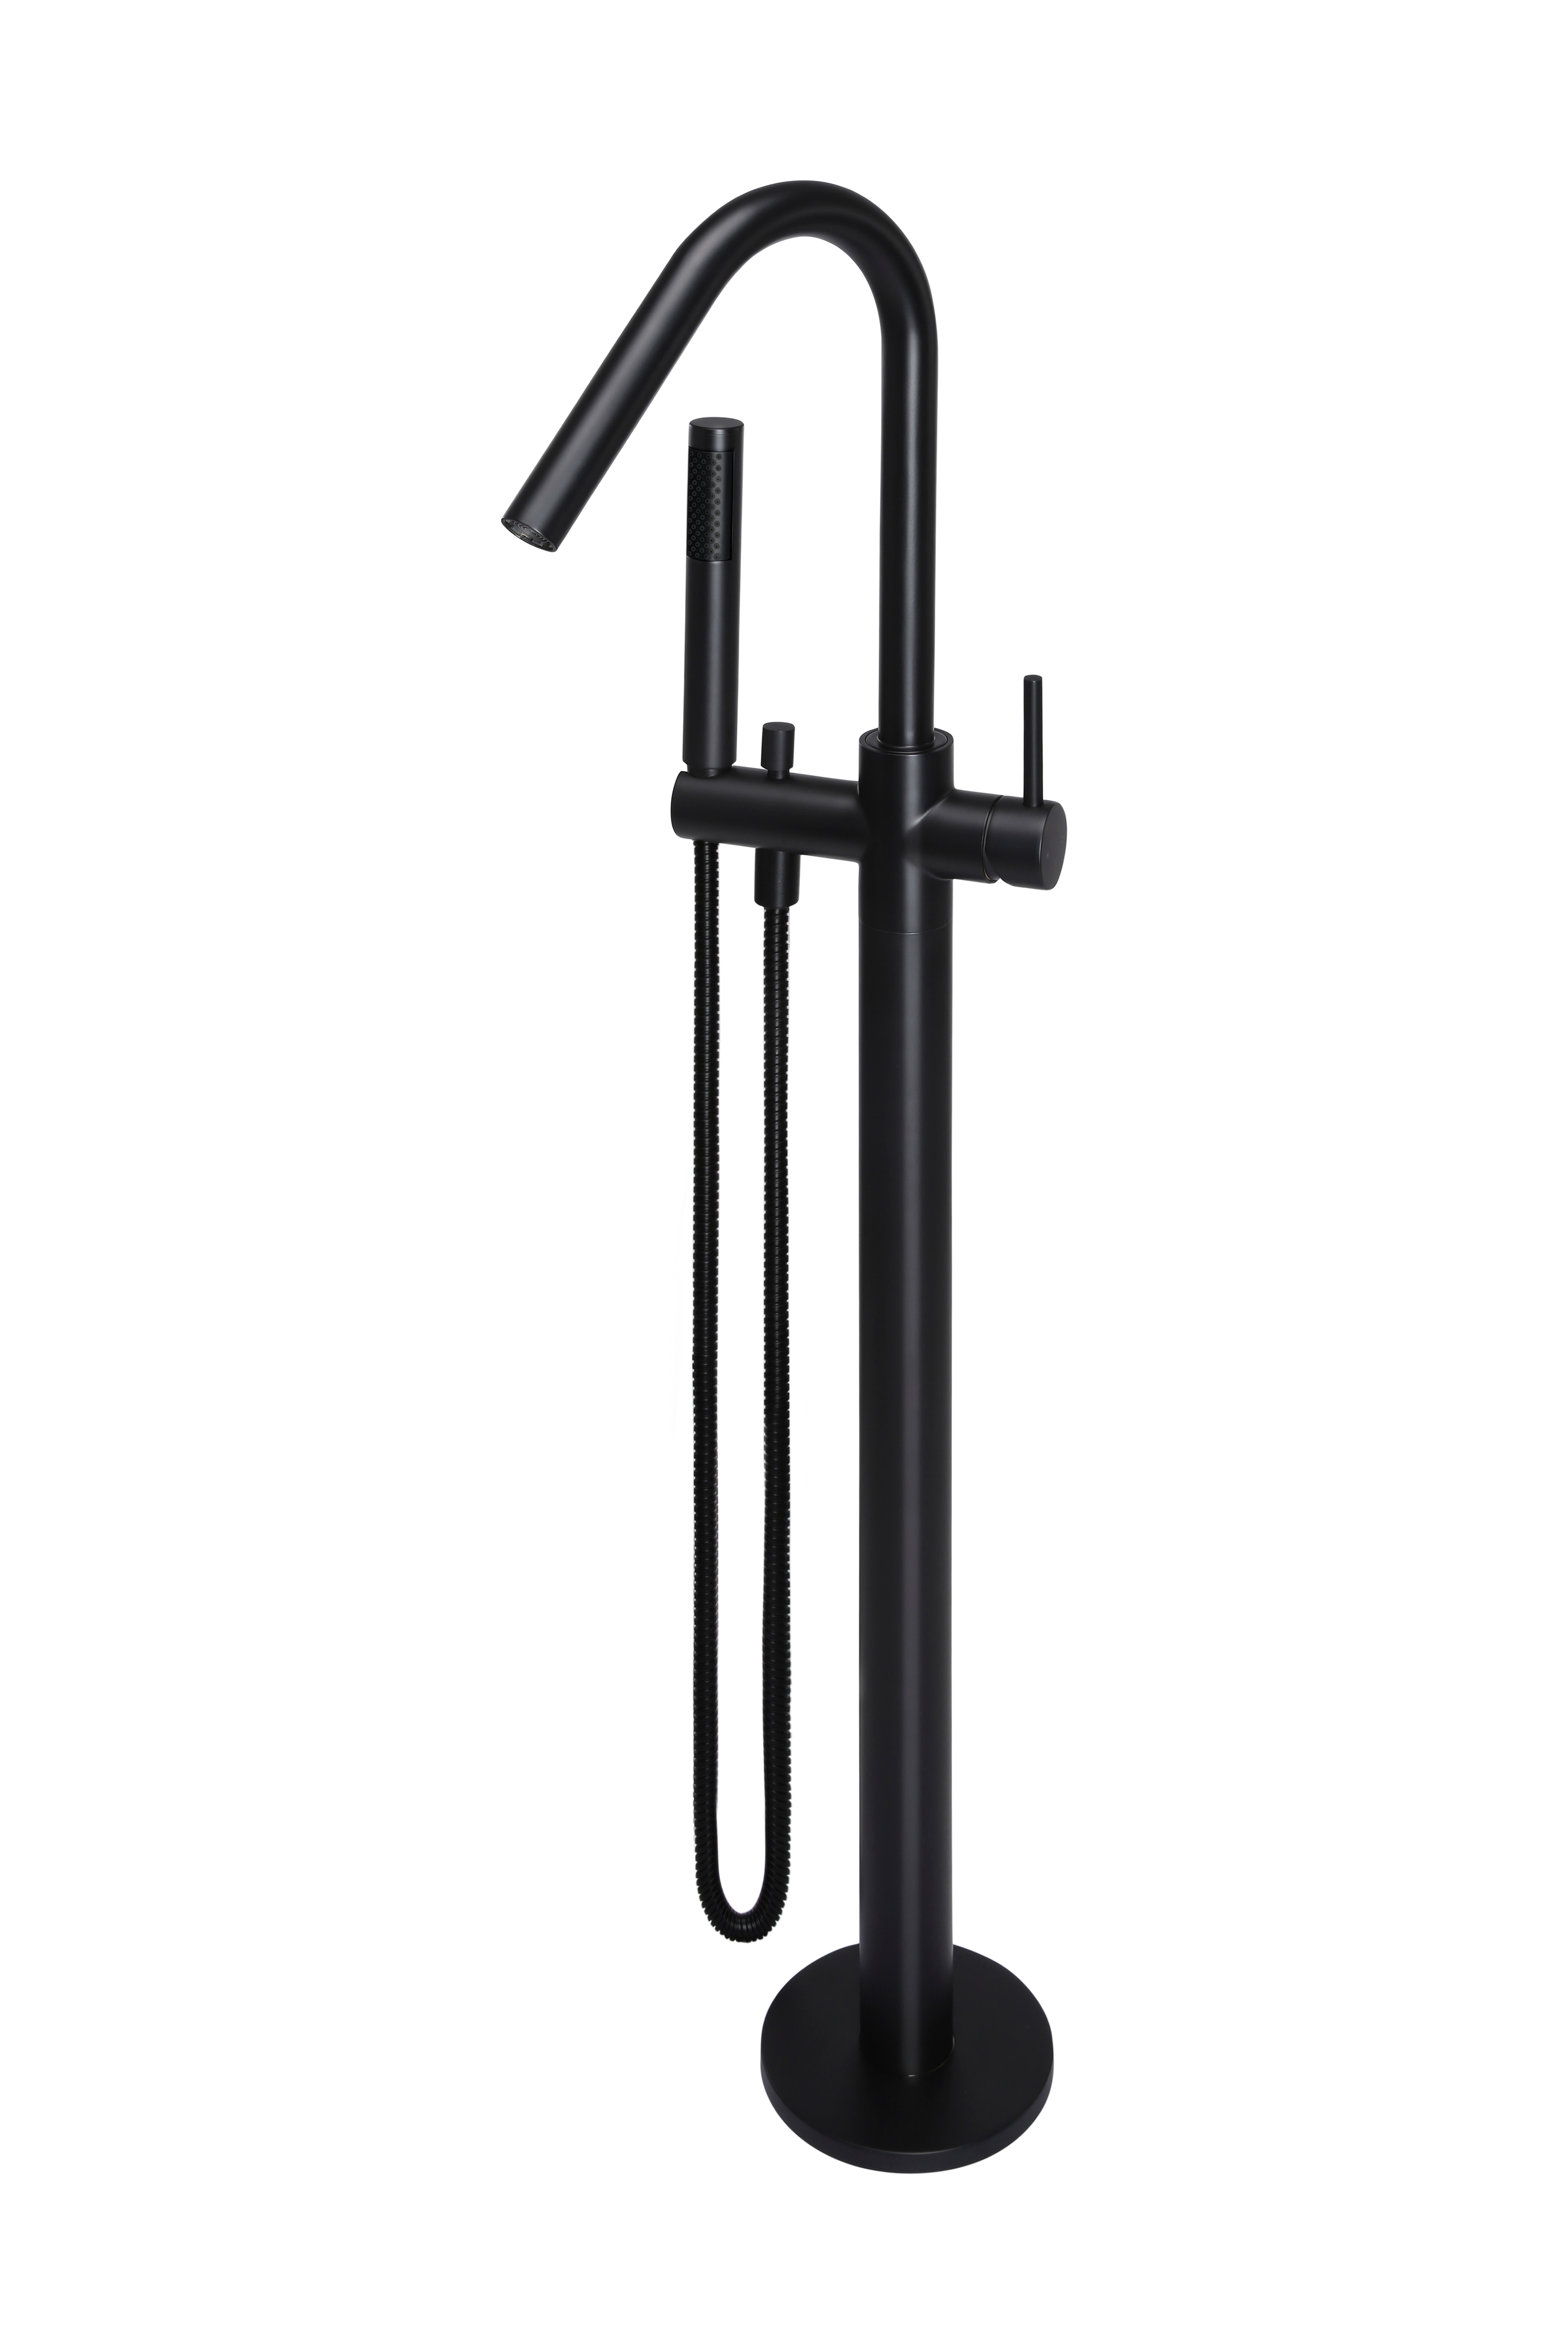 MATTE BLACK ROUND FREESTANDING BATH SPOUT AND HAND SHOWER by Meir, a Bathroom Taps & Mixers for sale on Style Sourcebook